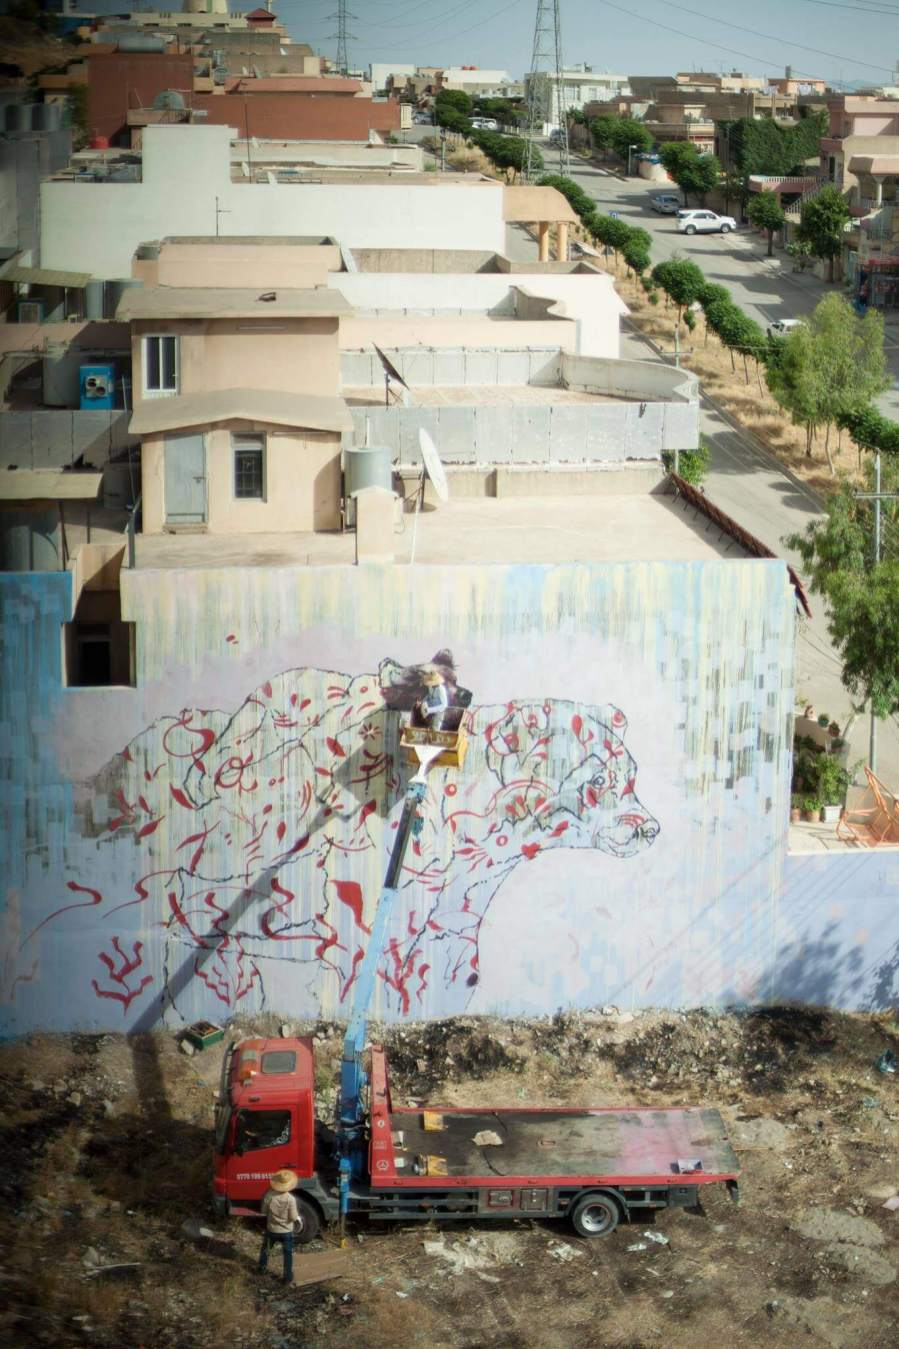 ernesto-maranje-iraq-refugee-street-art-mural-photo-credit-aptart-2